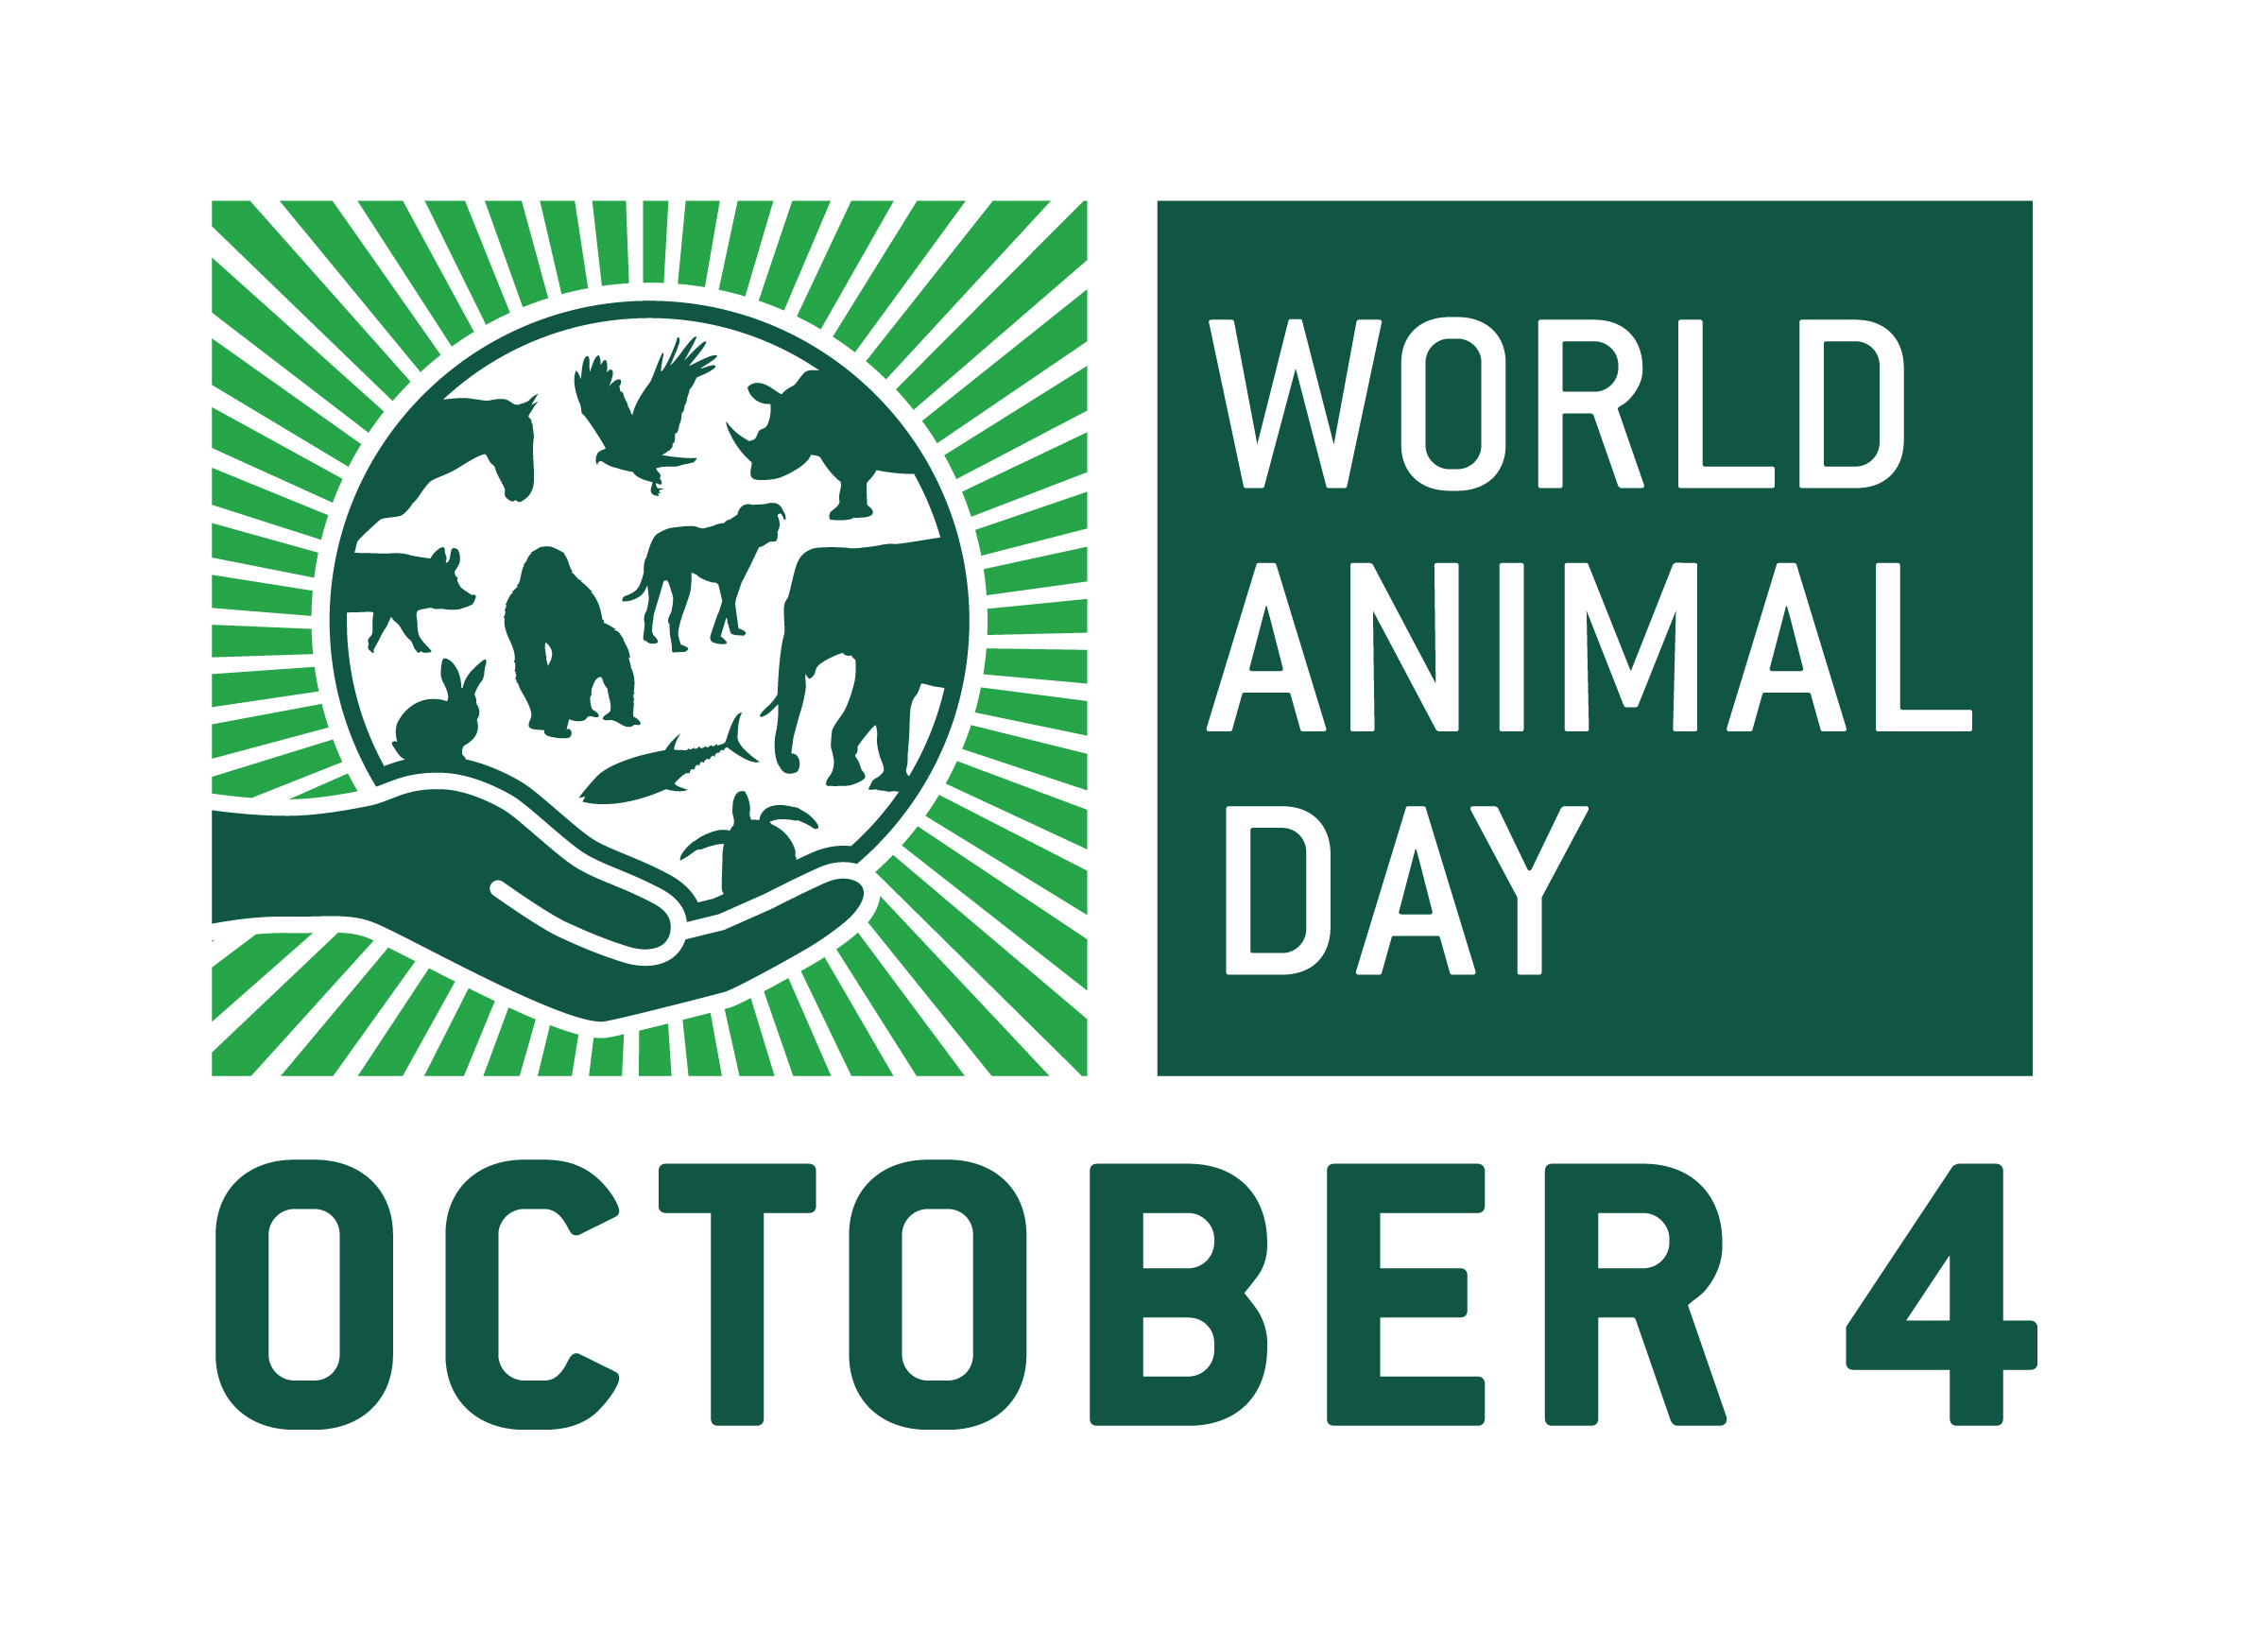 World Wildlife Day Png - Tell Google To Celebrate World Animal Day By Creating A Google U201Cdoodleu201D!, Transparent background PNG HD thumbnail